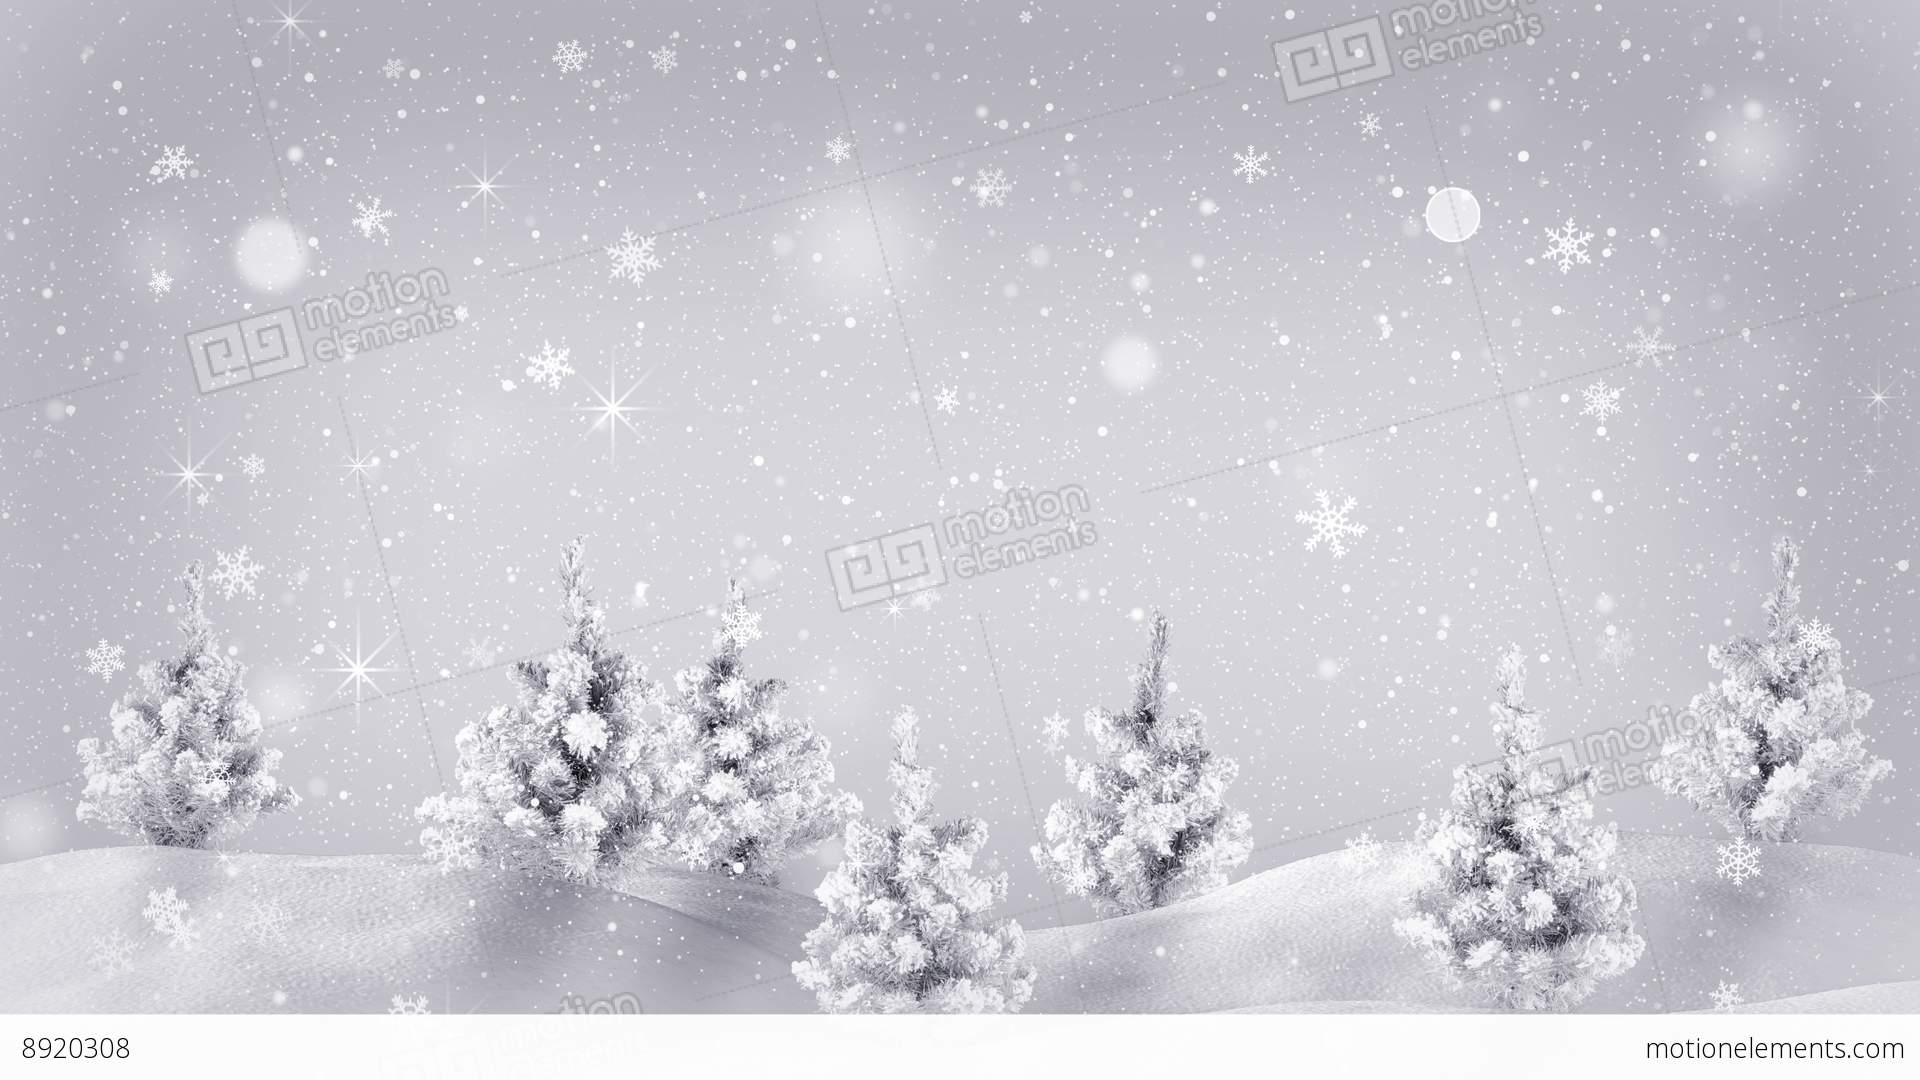 Snow Covered Trees Christmas Animation Loop 4k (4096x2304